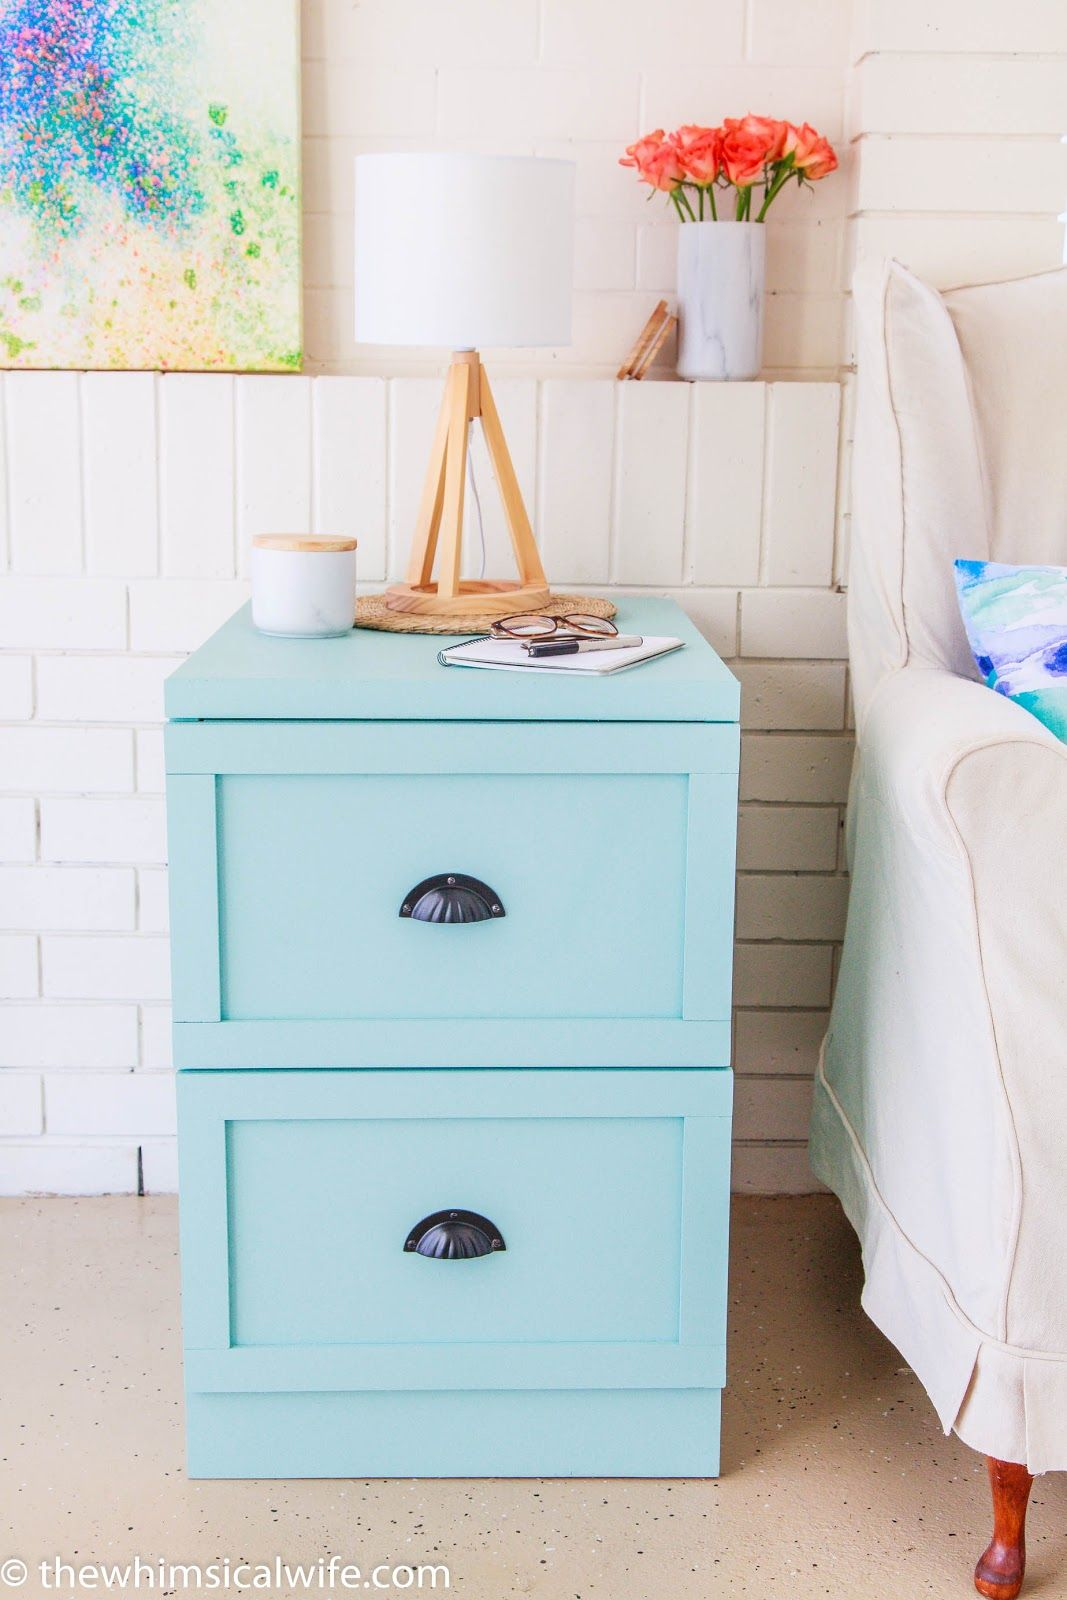 How To Transform A Tired Old Filing Cabinet